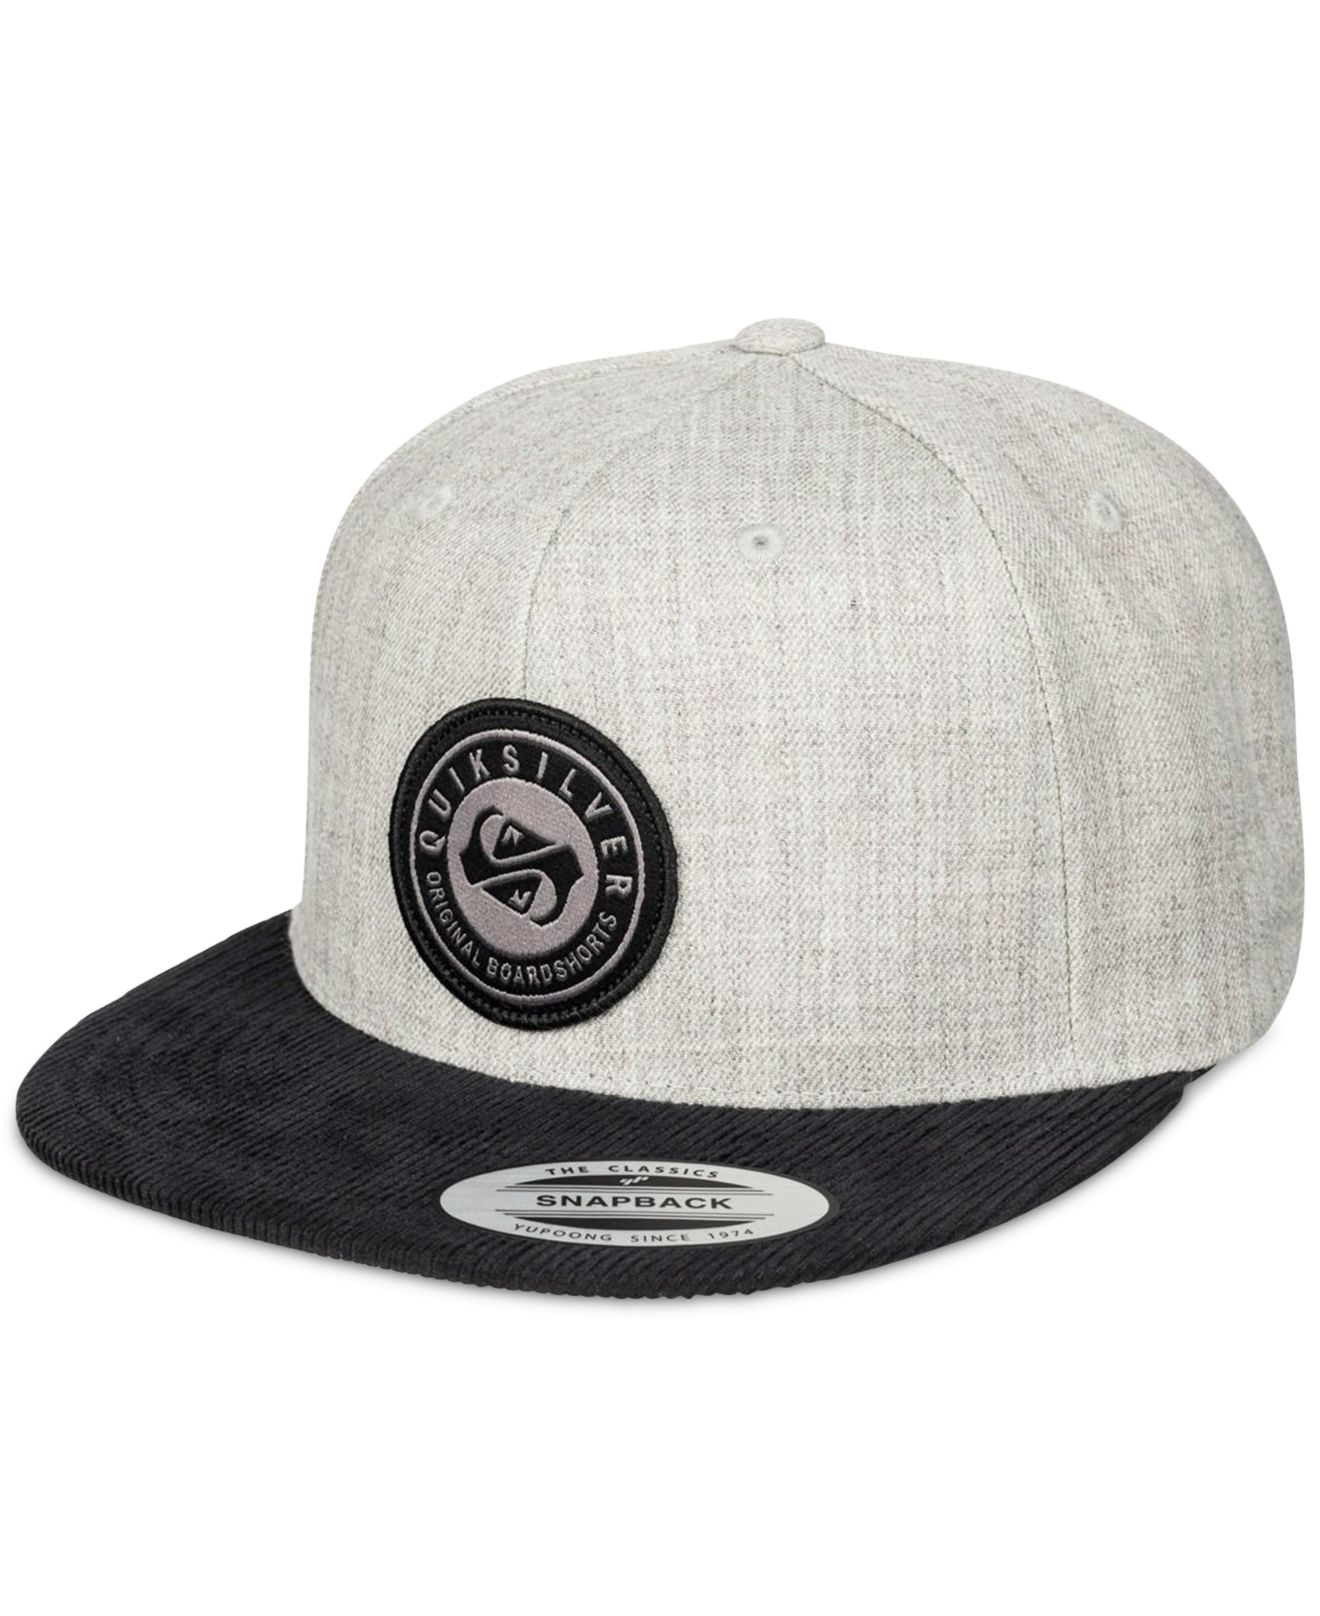 598f9da07eec18 ... czech lyst quiksilver roast snapback hat in gray for men 28279 f0ed3